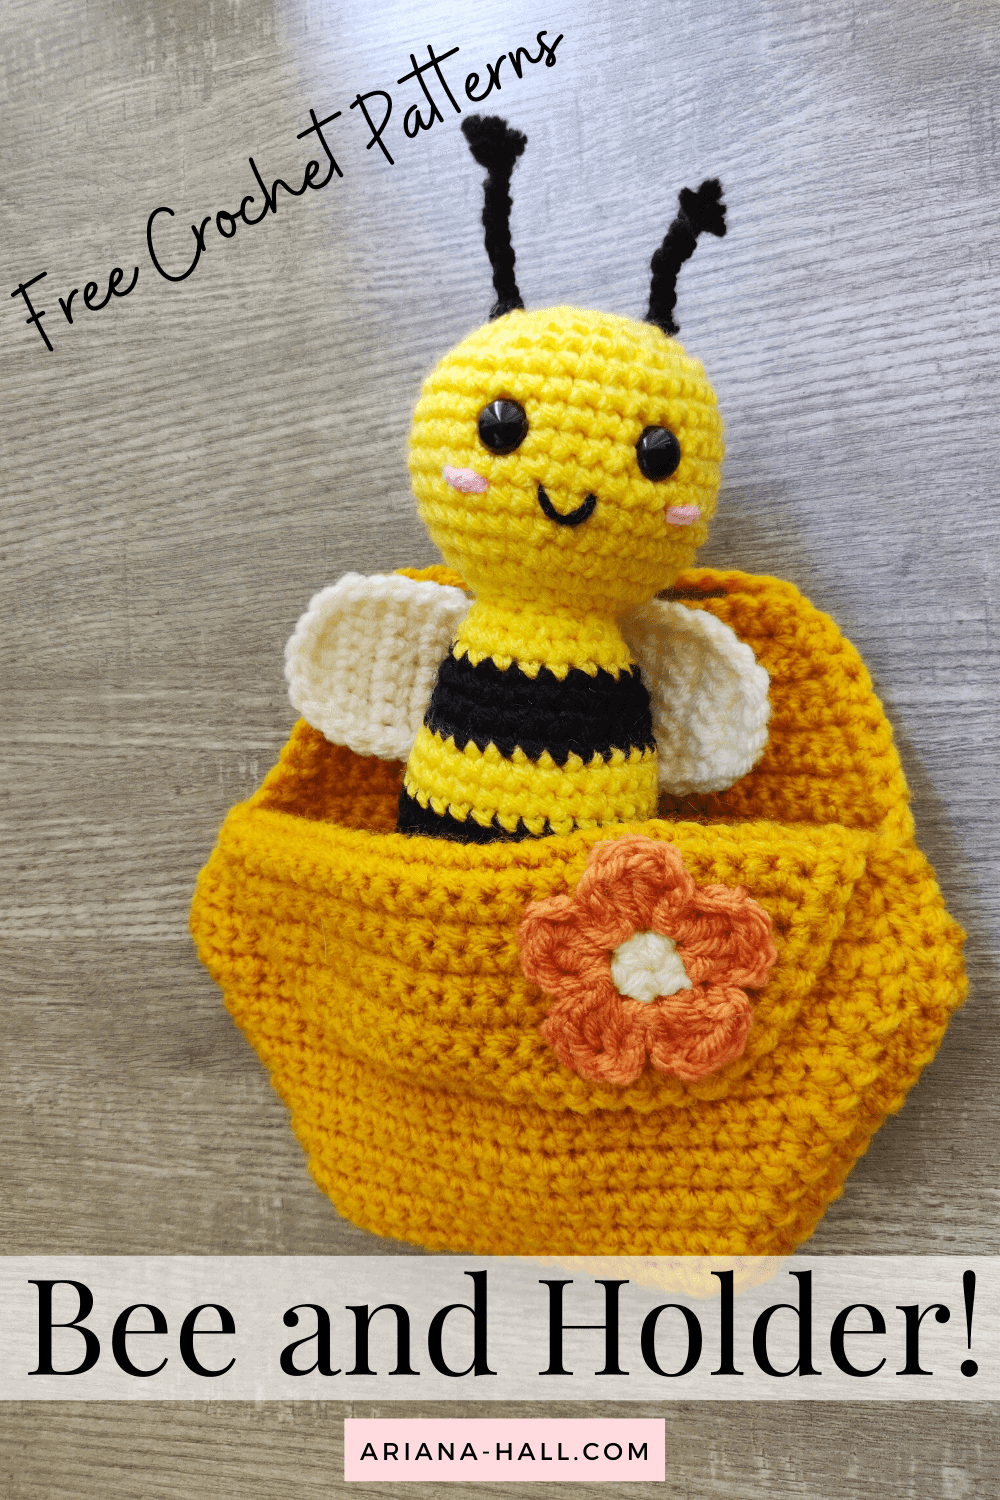 Black and yellow crochet bumble bee in a honeycomb wall hanging.